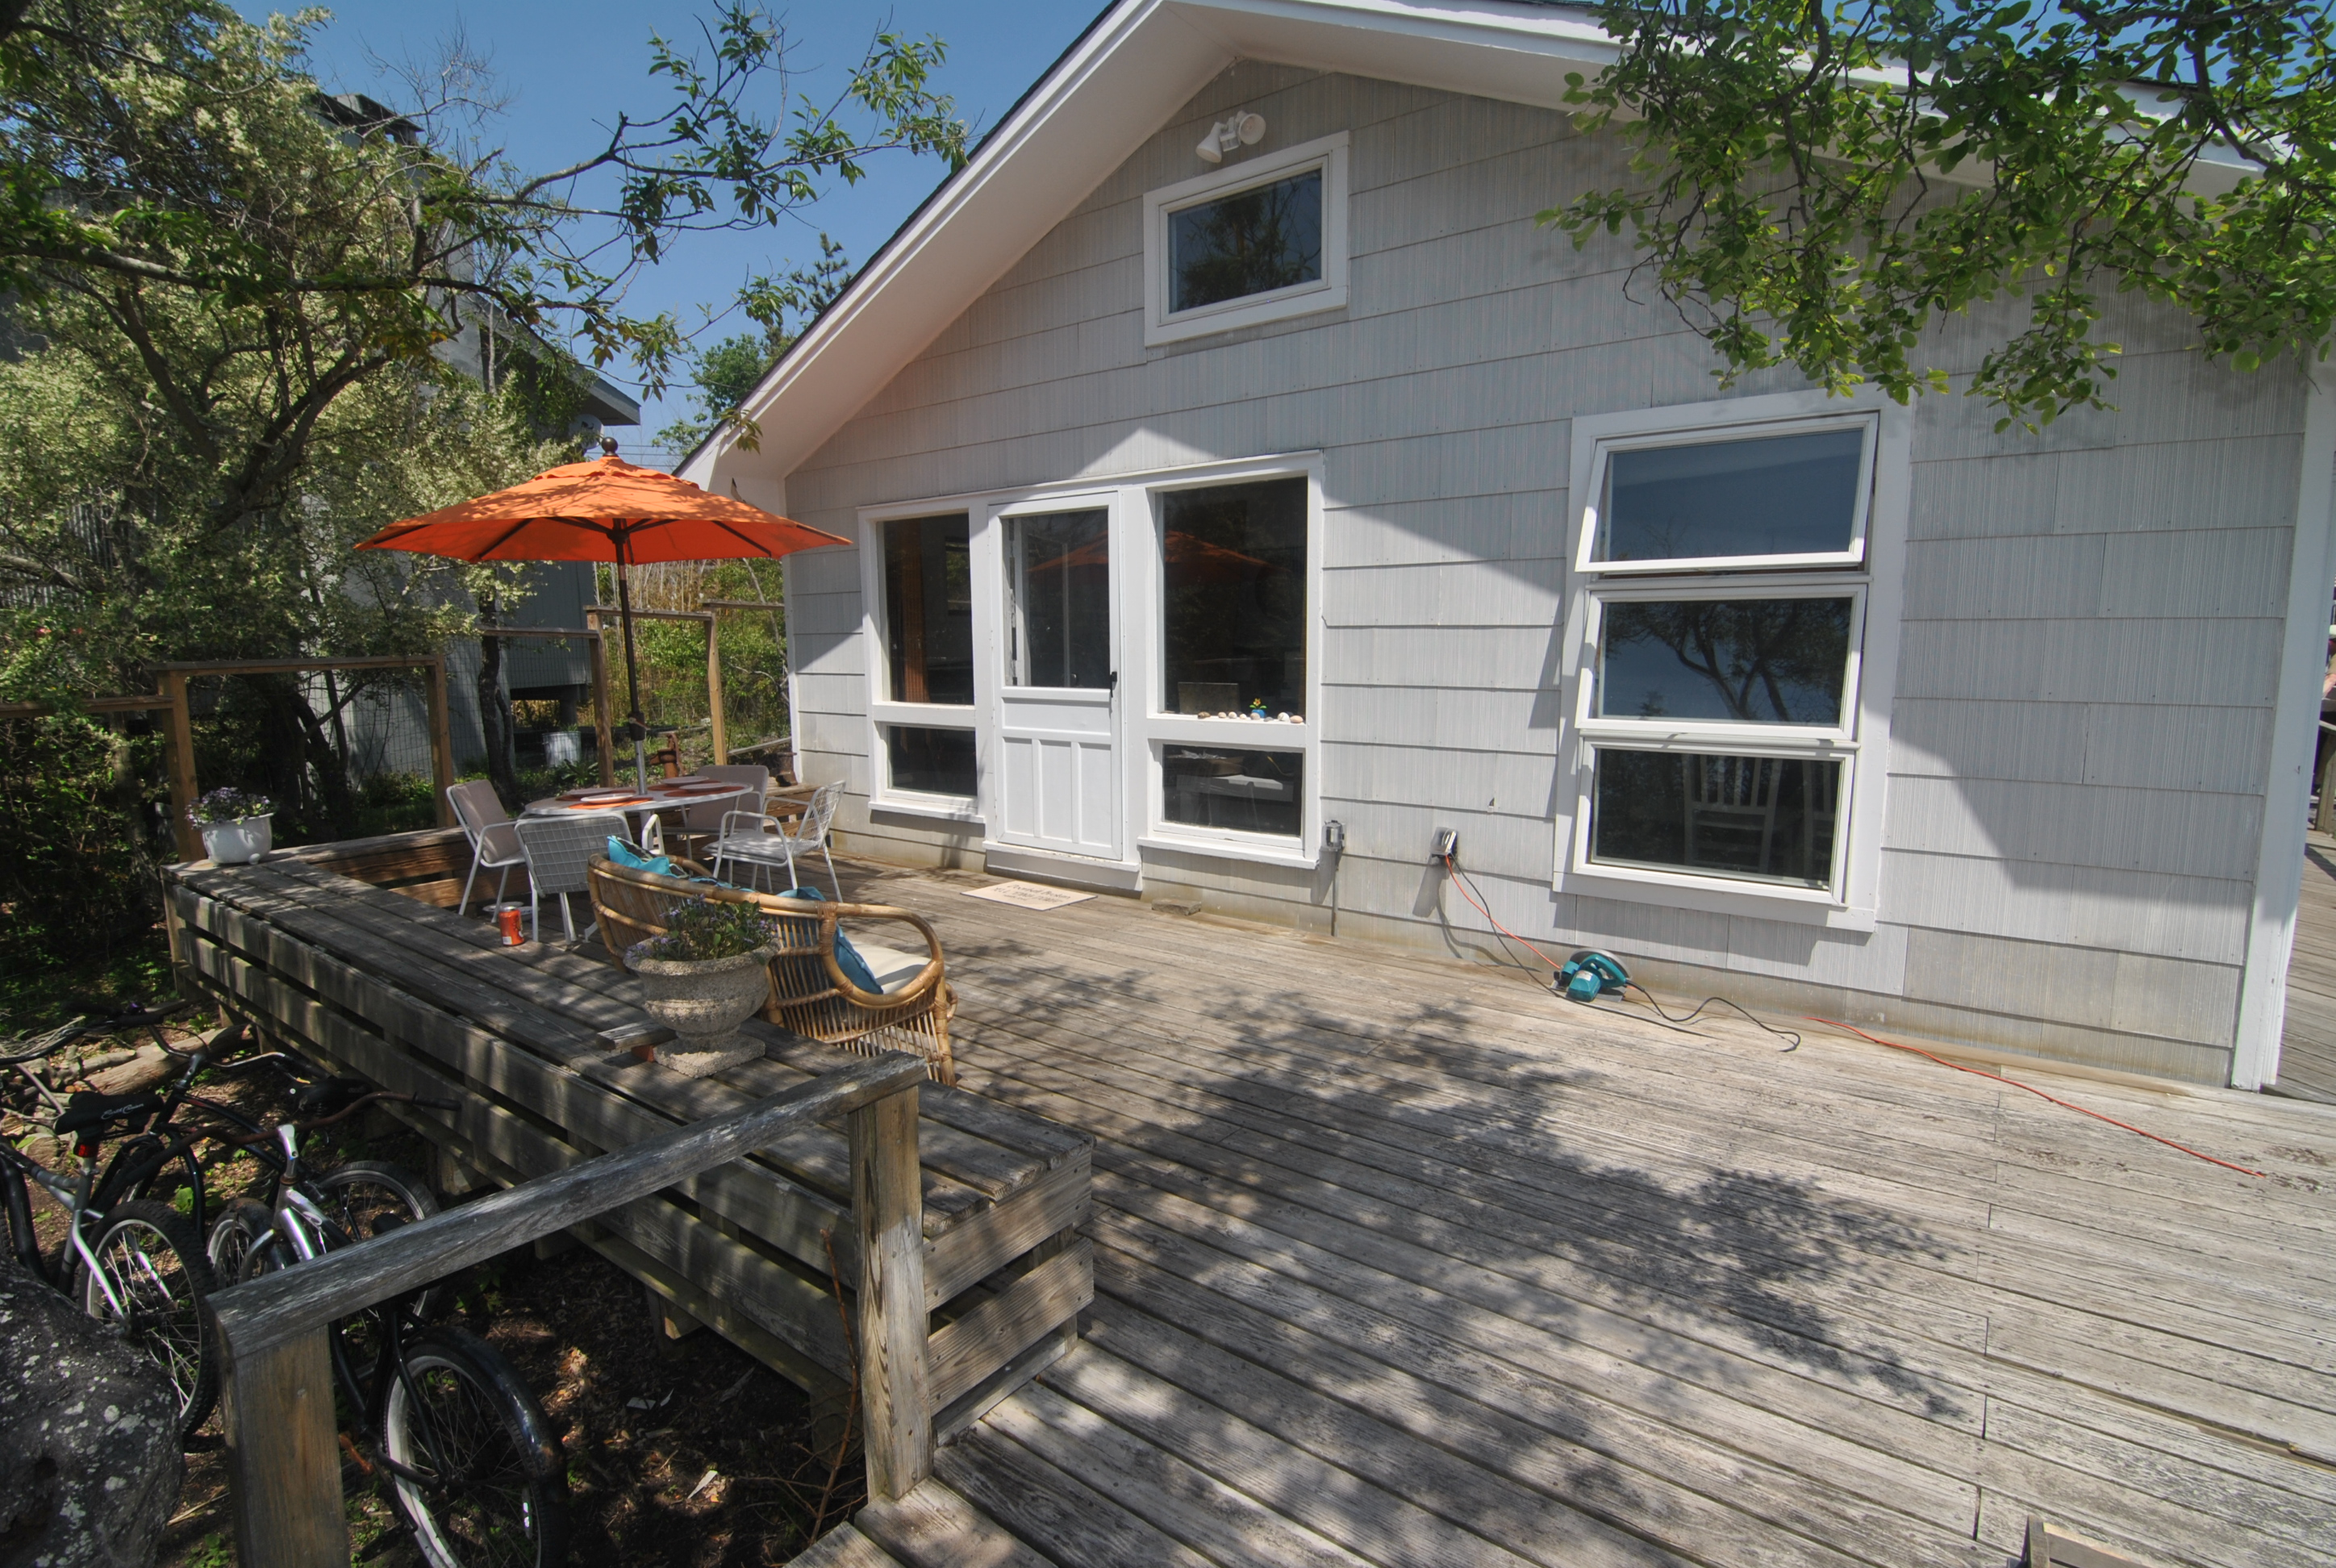 Brand new kitchen with new stainless steel appliances and subzero refrigerator. Large Deck. Brand new BBQ, WIFI, Direct TV, Bikes, beach toys, board games, and AC in both bedrooms. This 2 bedroom, 1 bath home sleeps 5 and is available for 2019 weekly rentals.